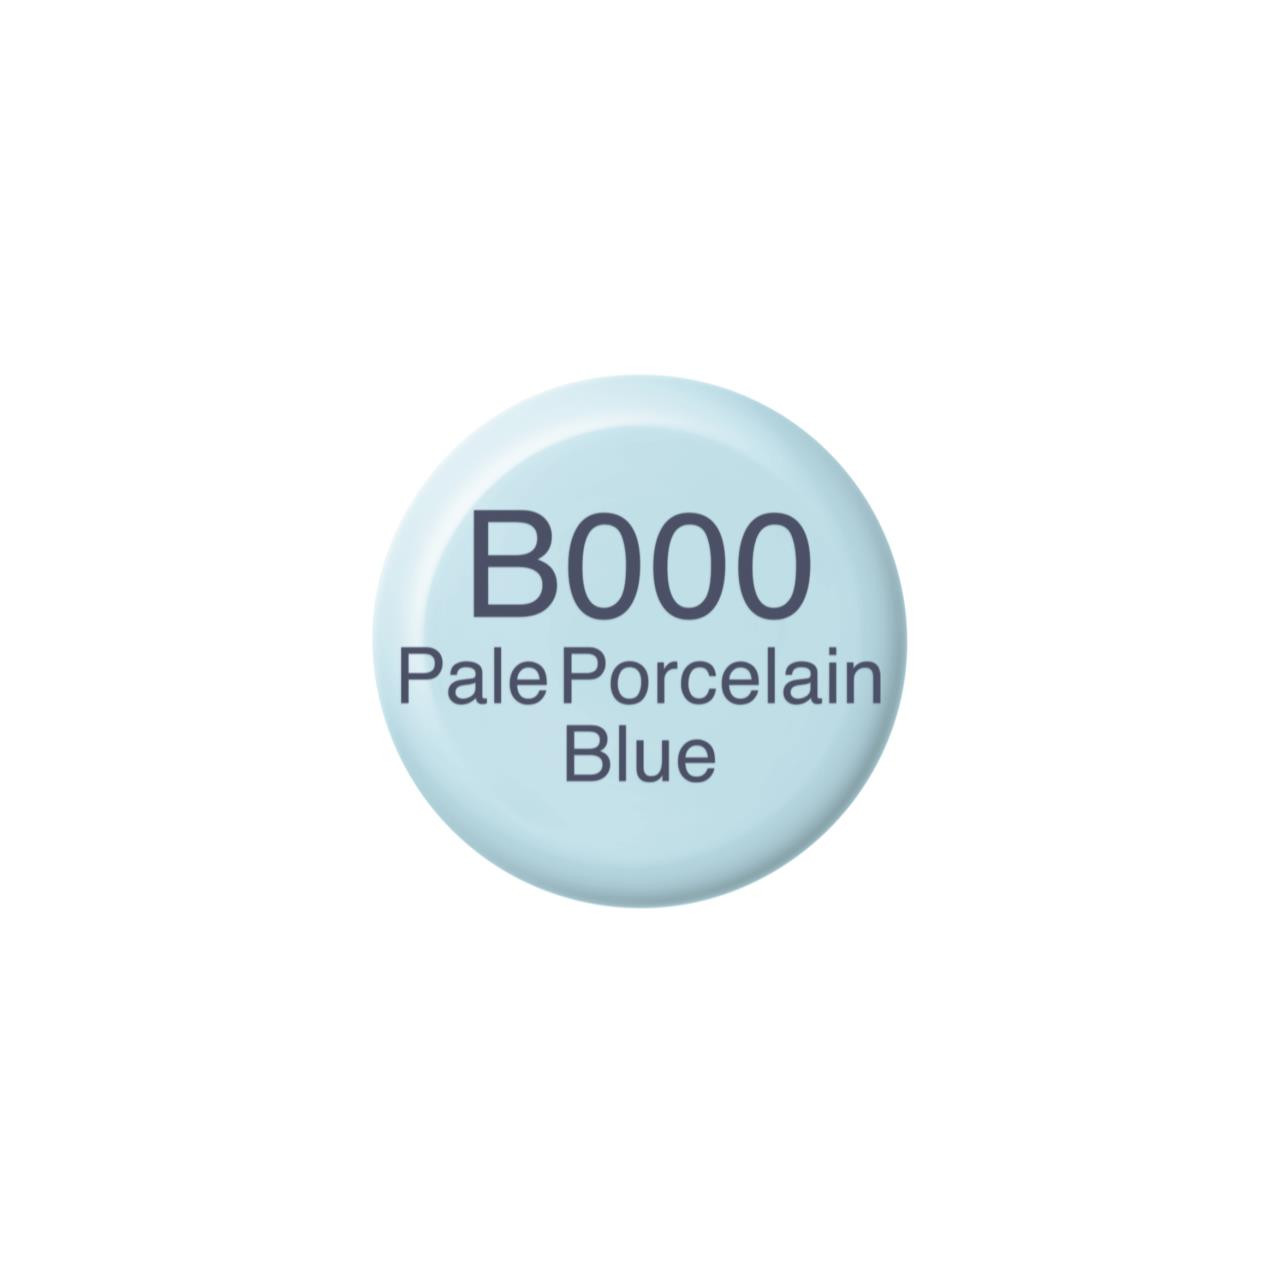 B000 Pale Porcelain Blue, Copic Ink - 4511338055816